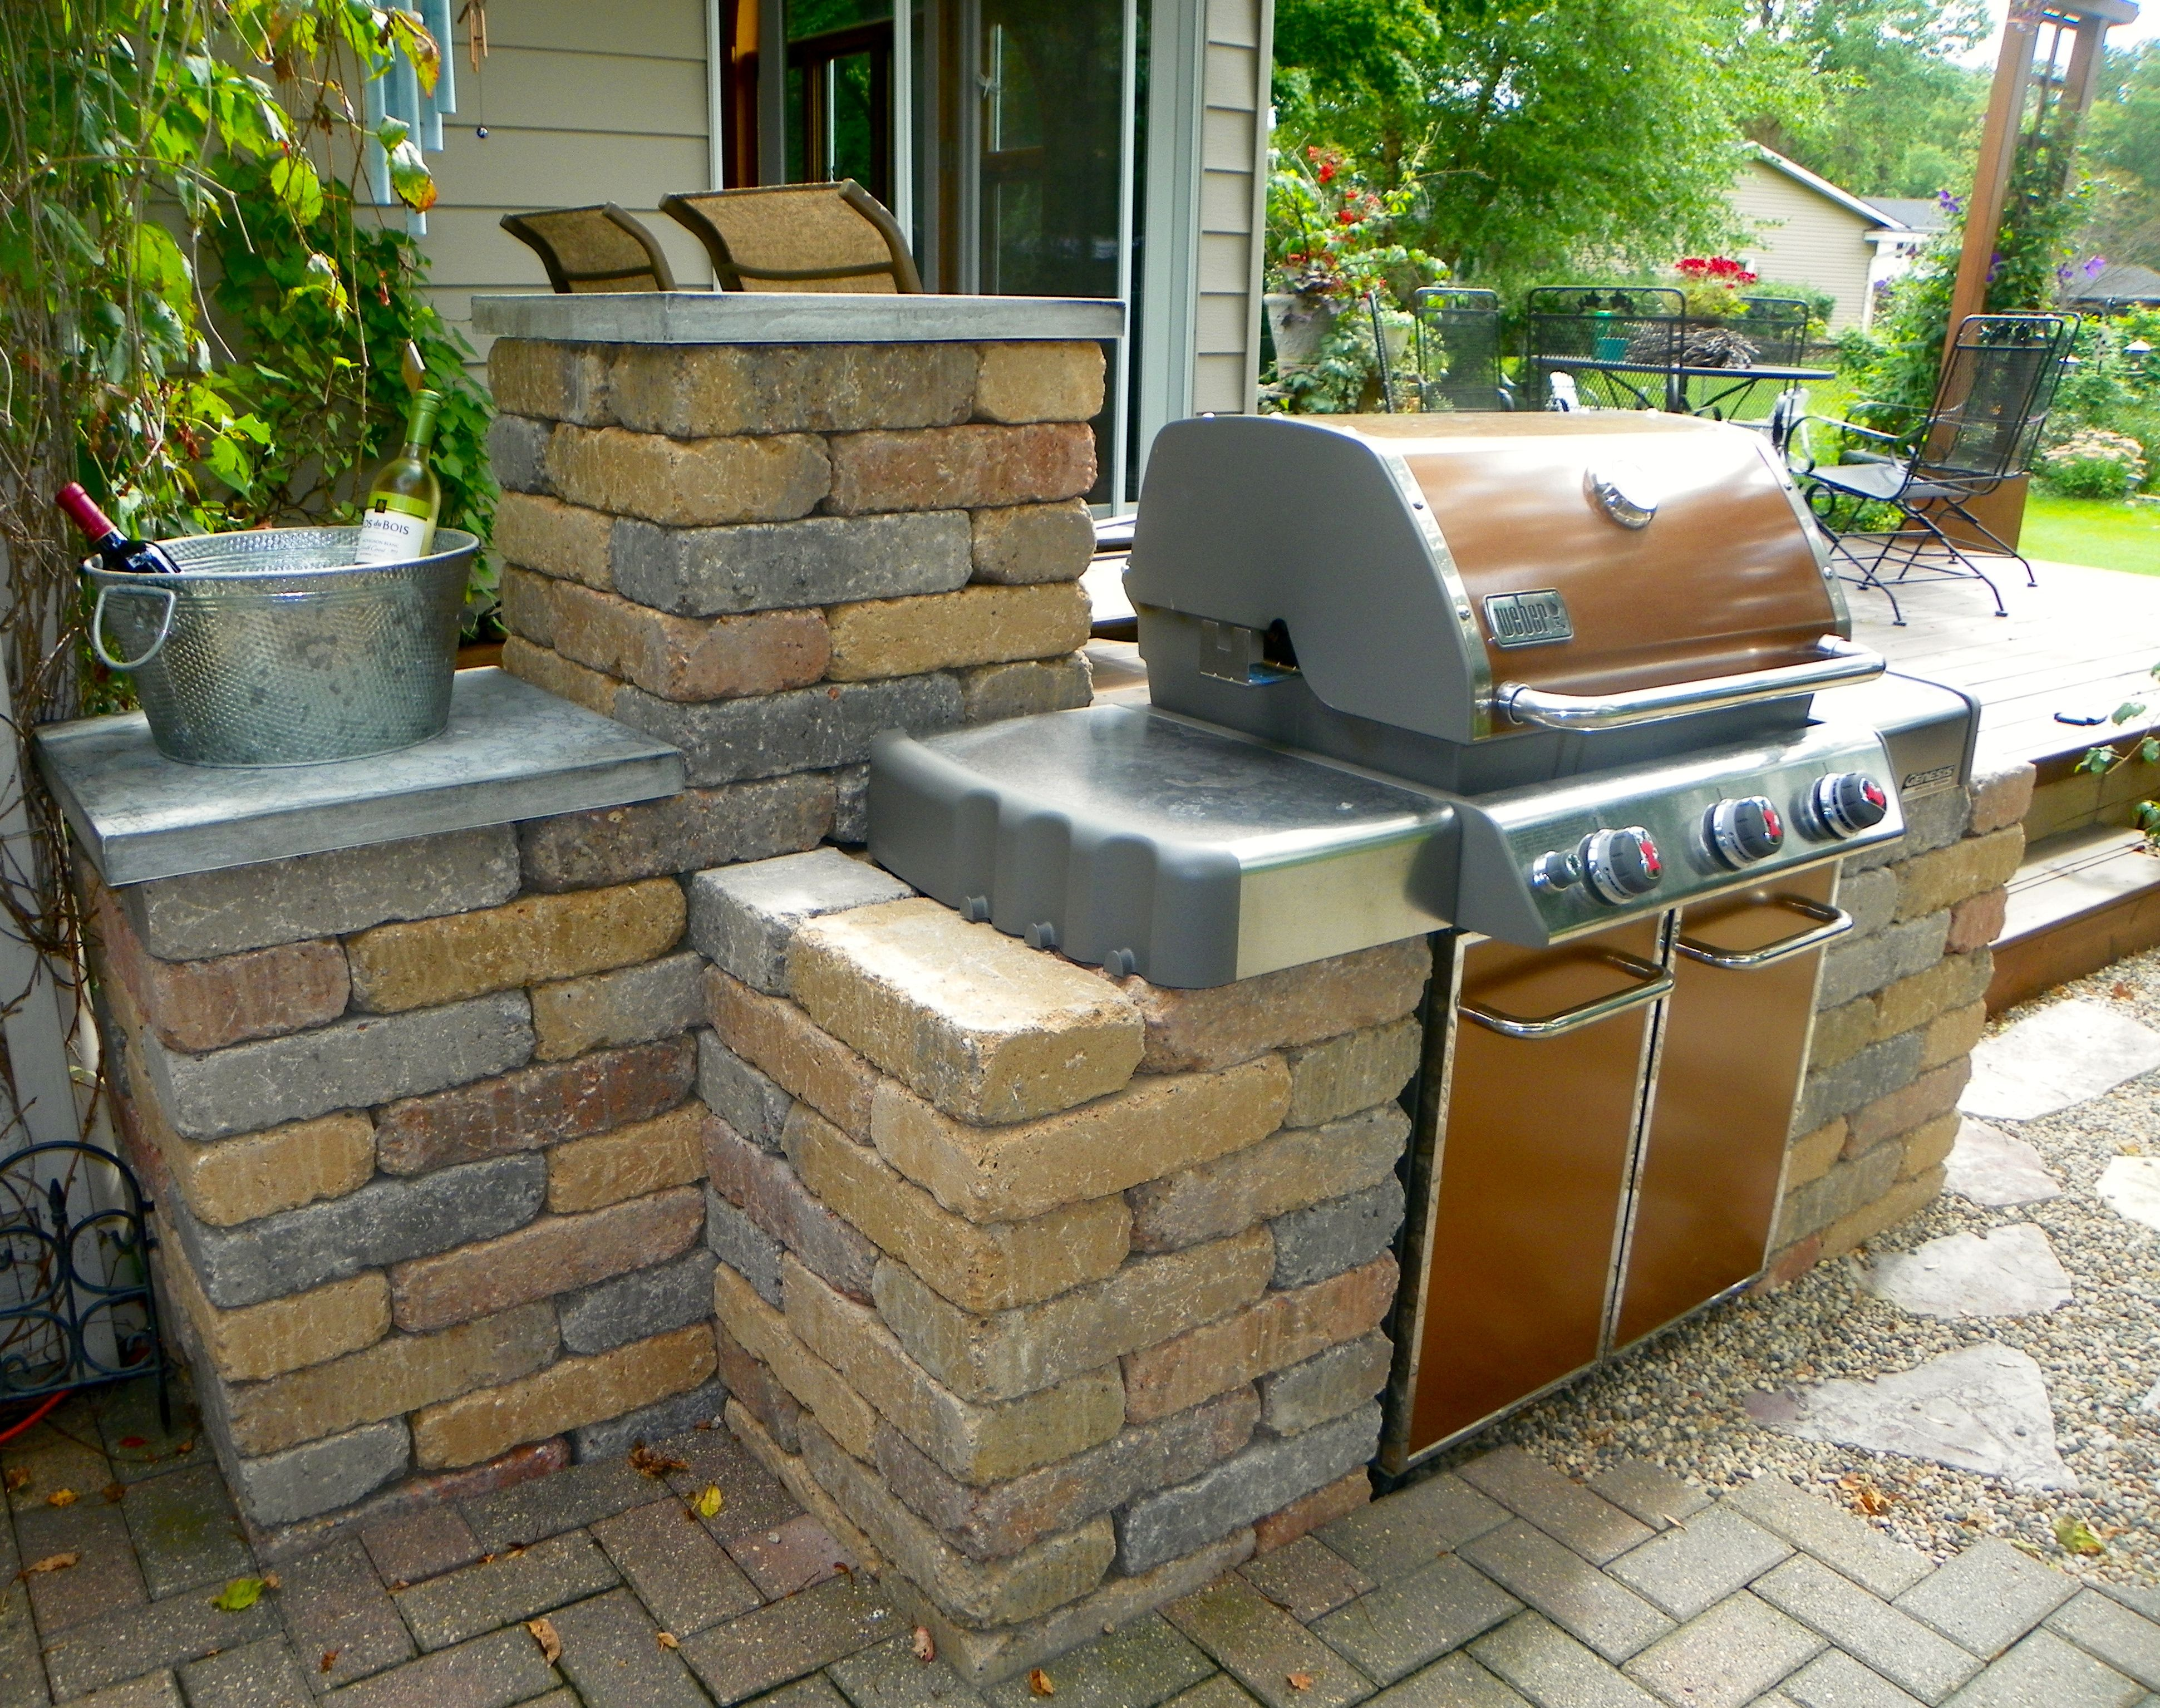 Outdoor Küche Diy Created A Way To Take A Standard Weber Grill And Make It